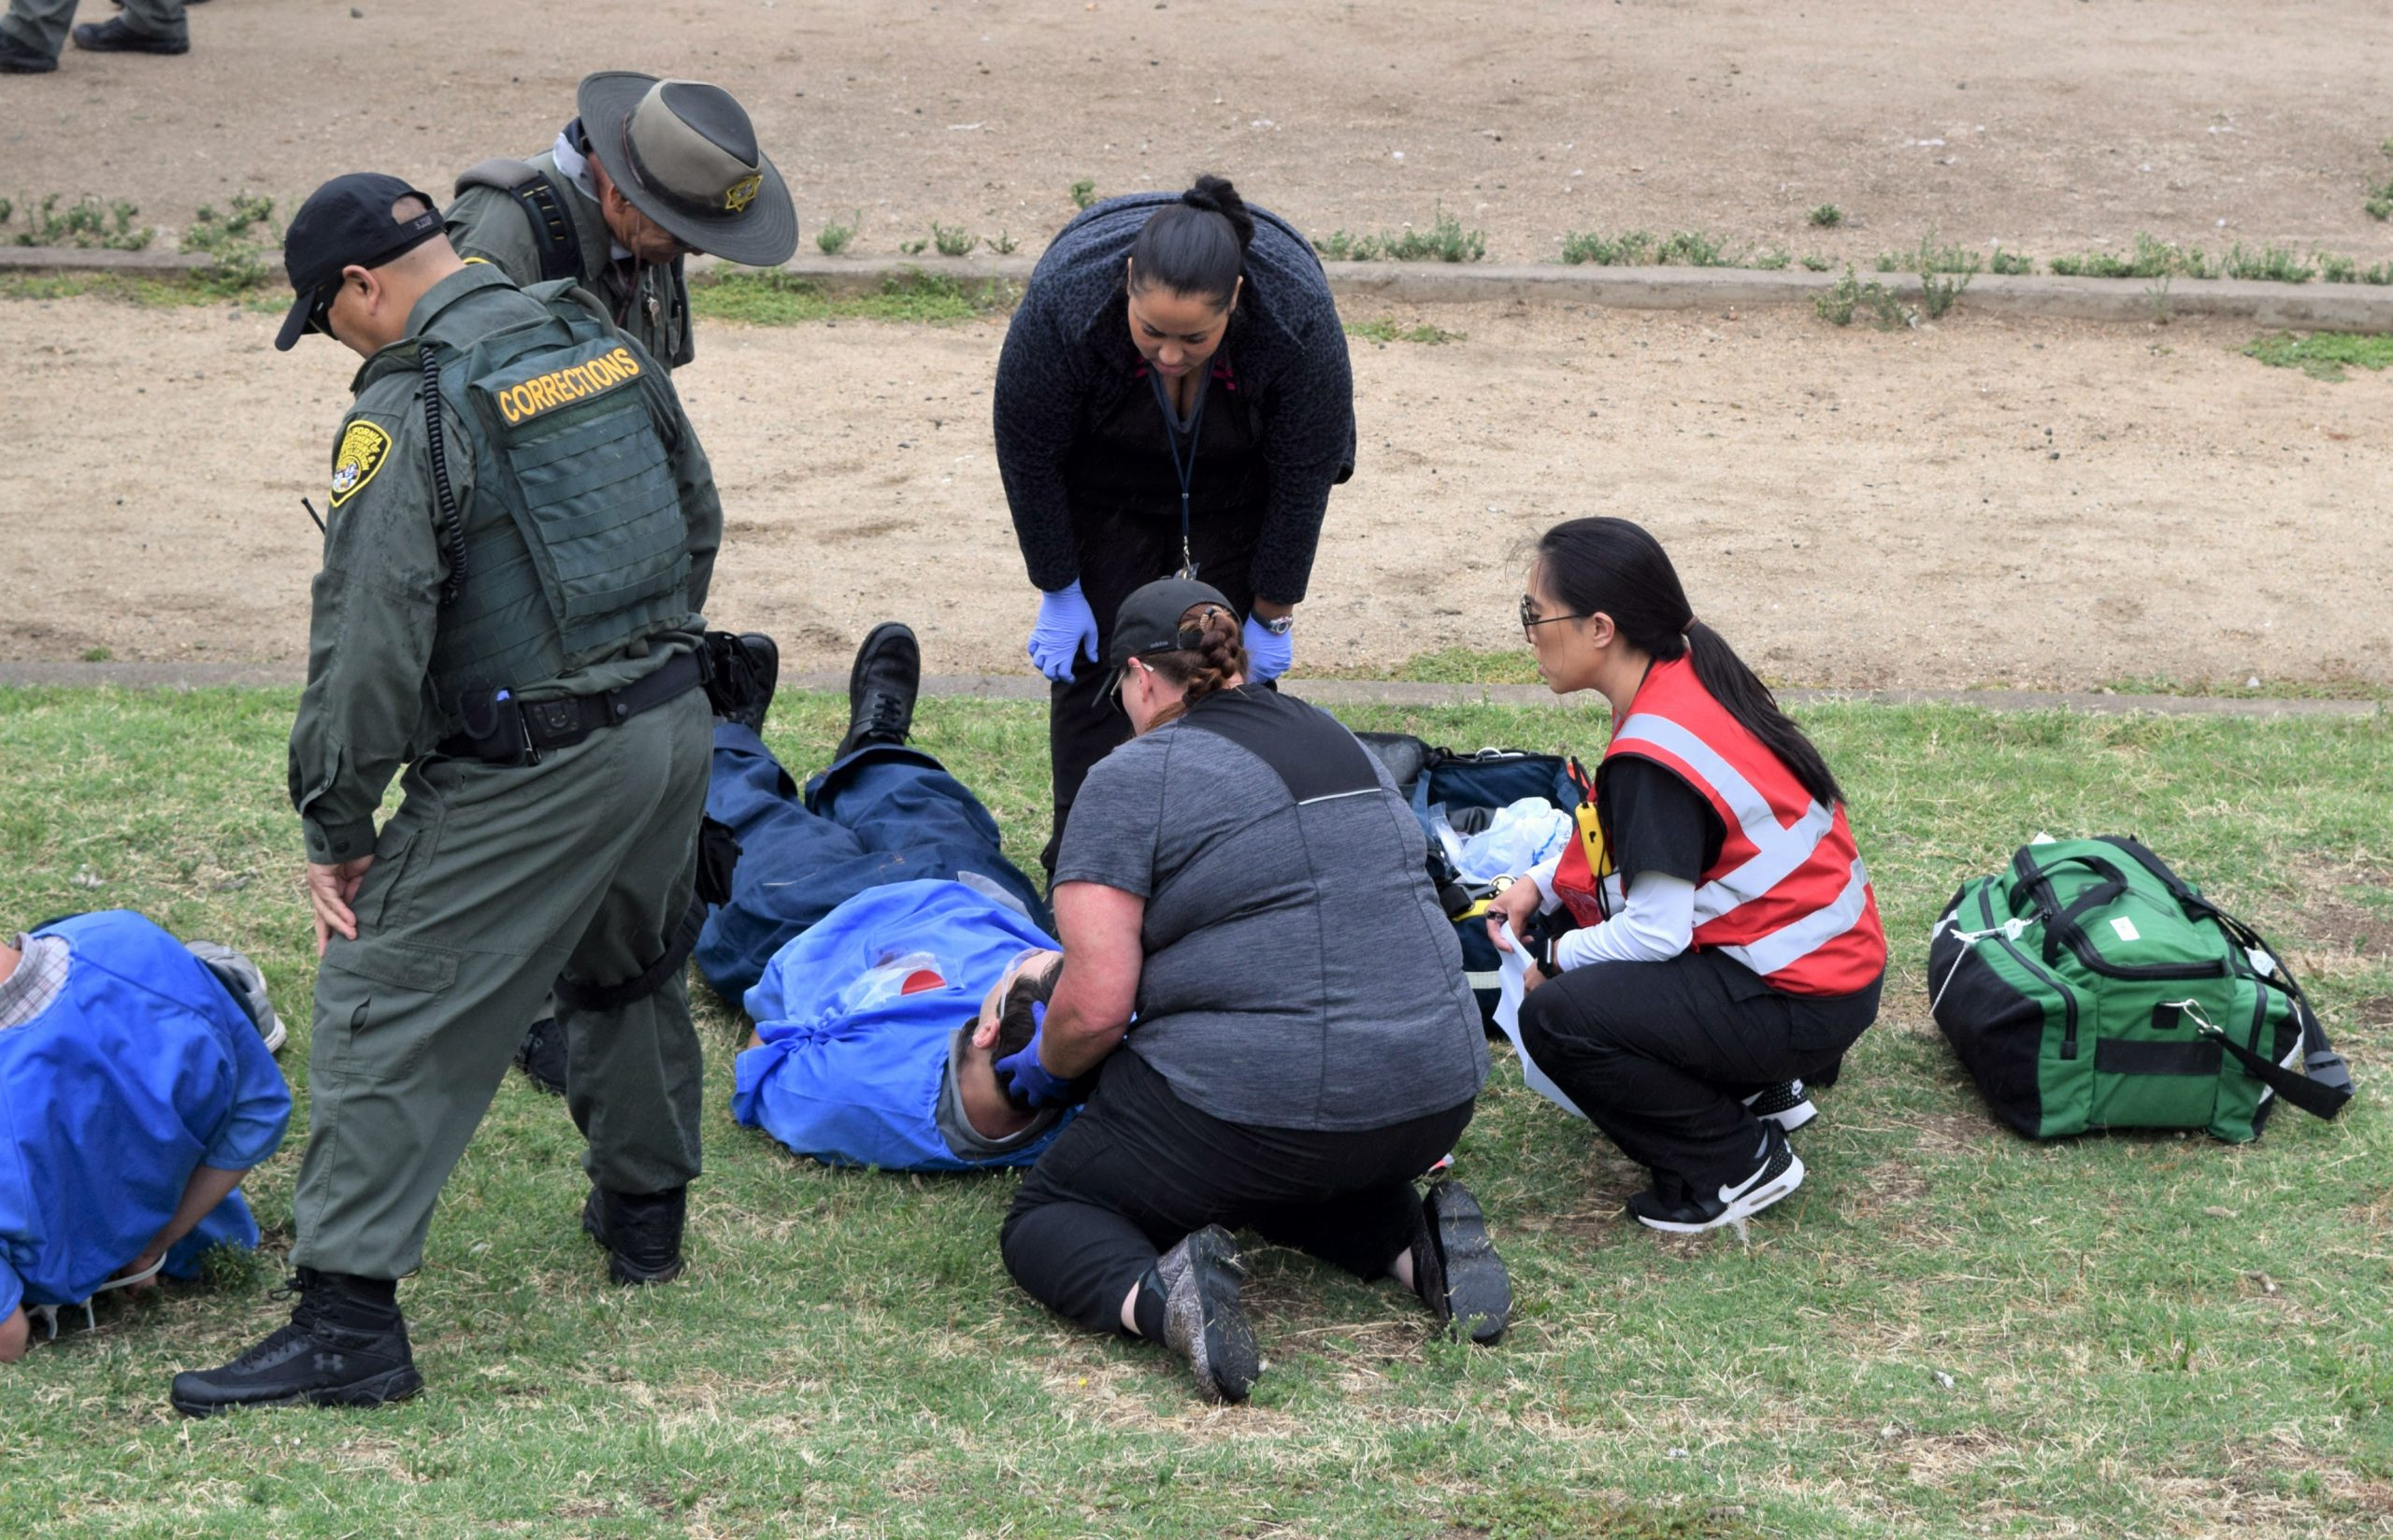 Prison medical staff huddle around a person on the ground while a correctional officer watches.